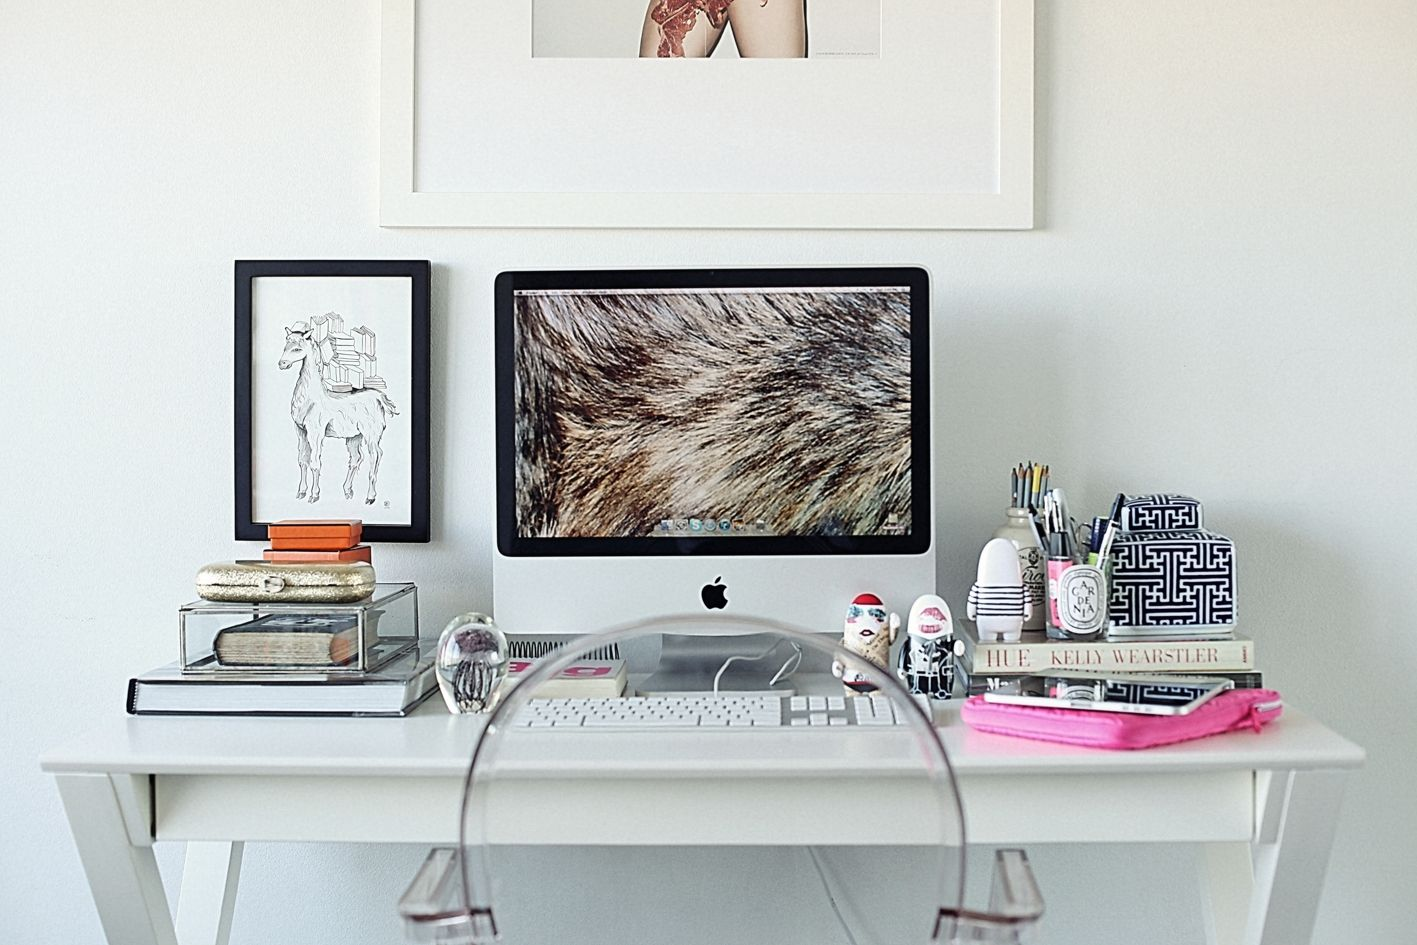 Home office interior ideas office spaces  office spaces ideas  office spaces design  home